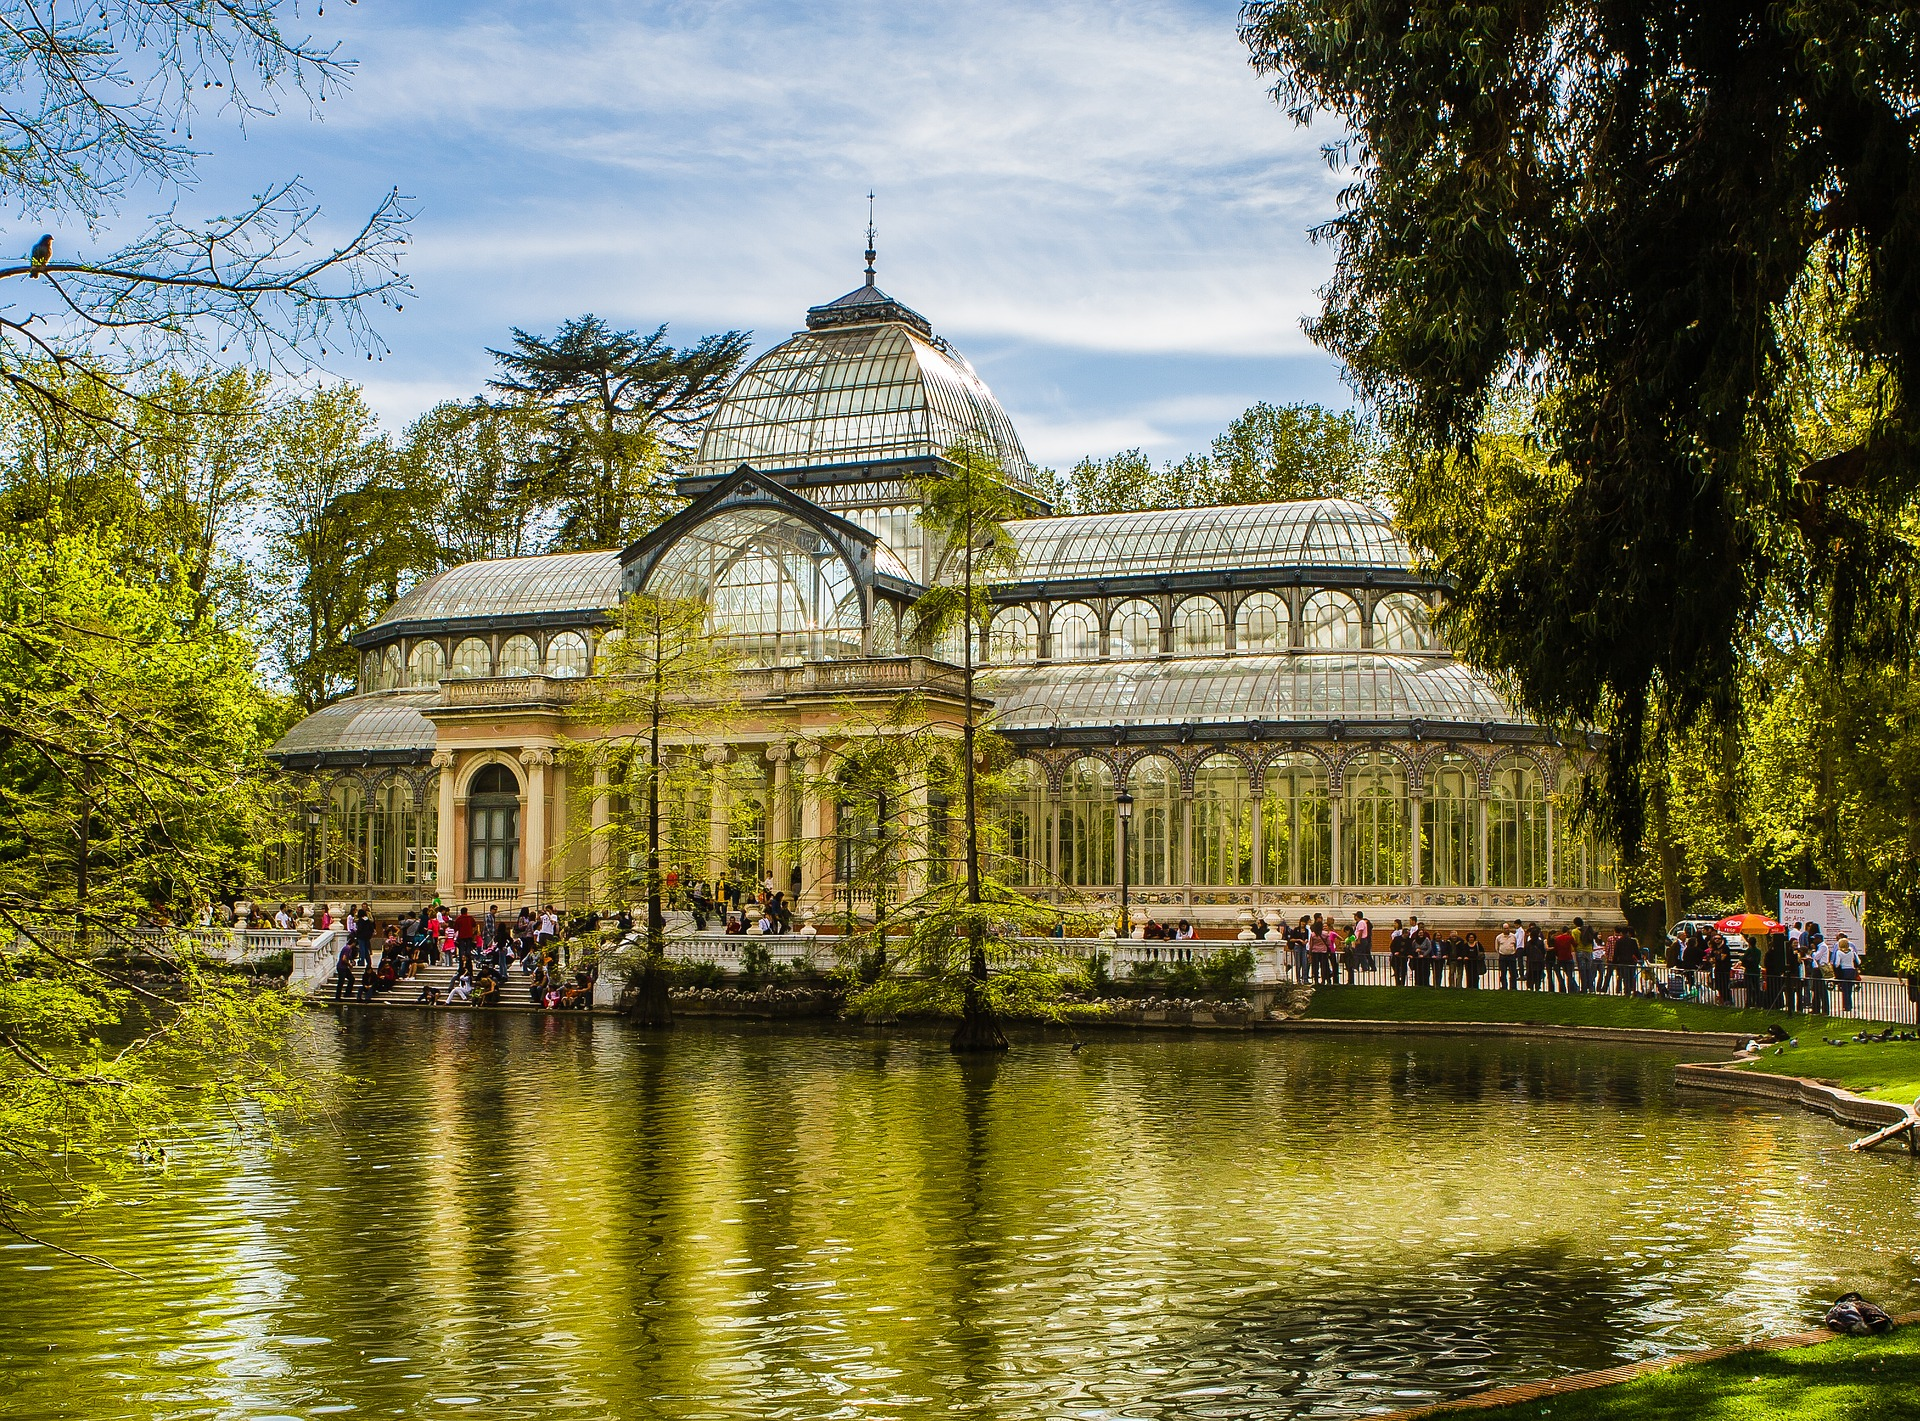 The Palacio de Cristal (Crystal Palace) in Madrid's Buen Retiro Park, Spain